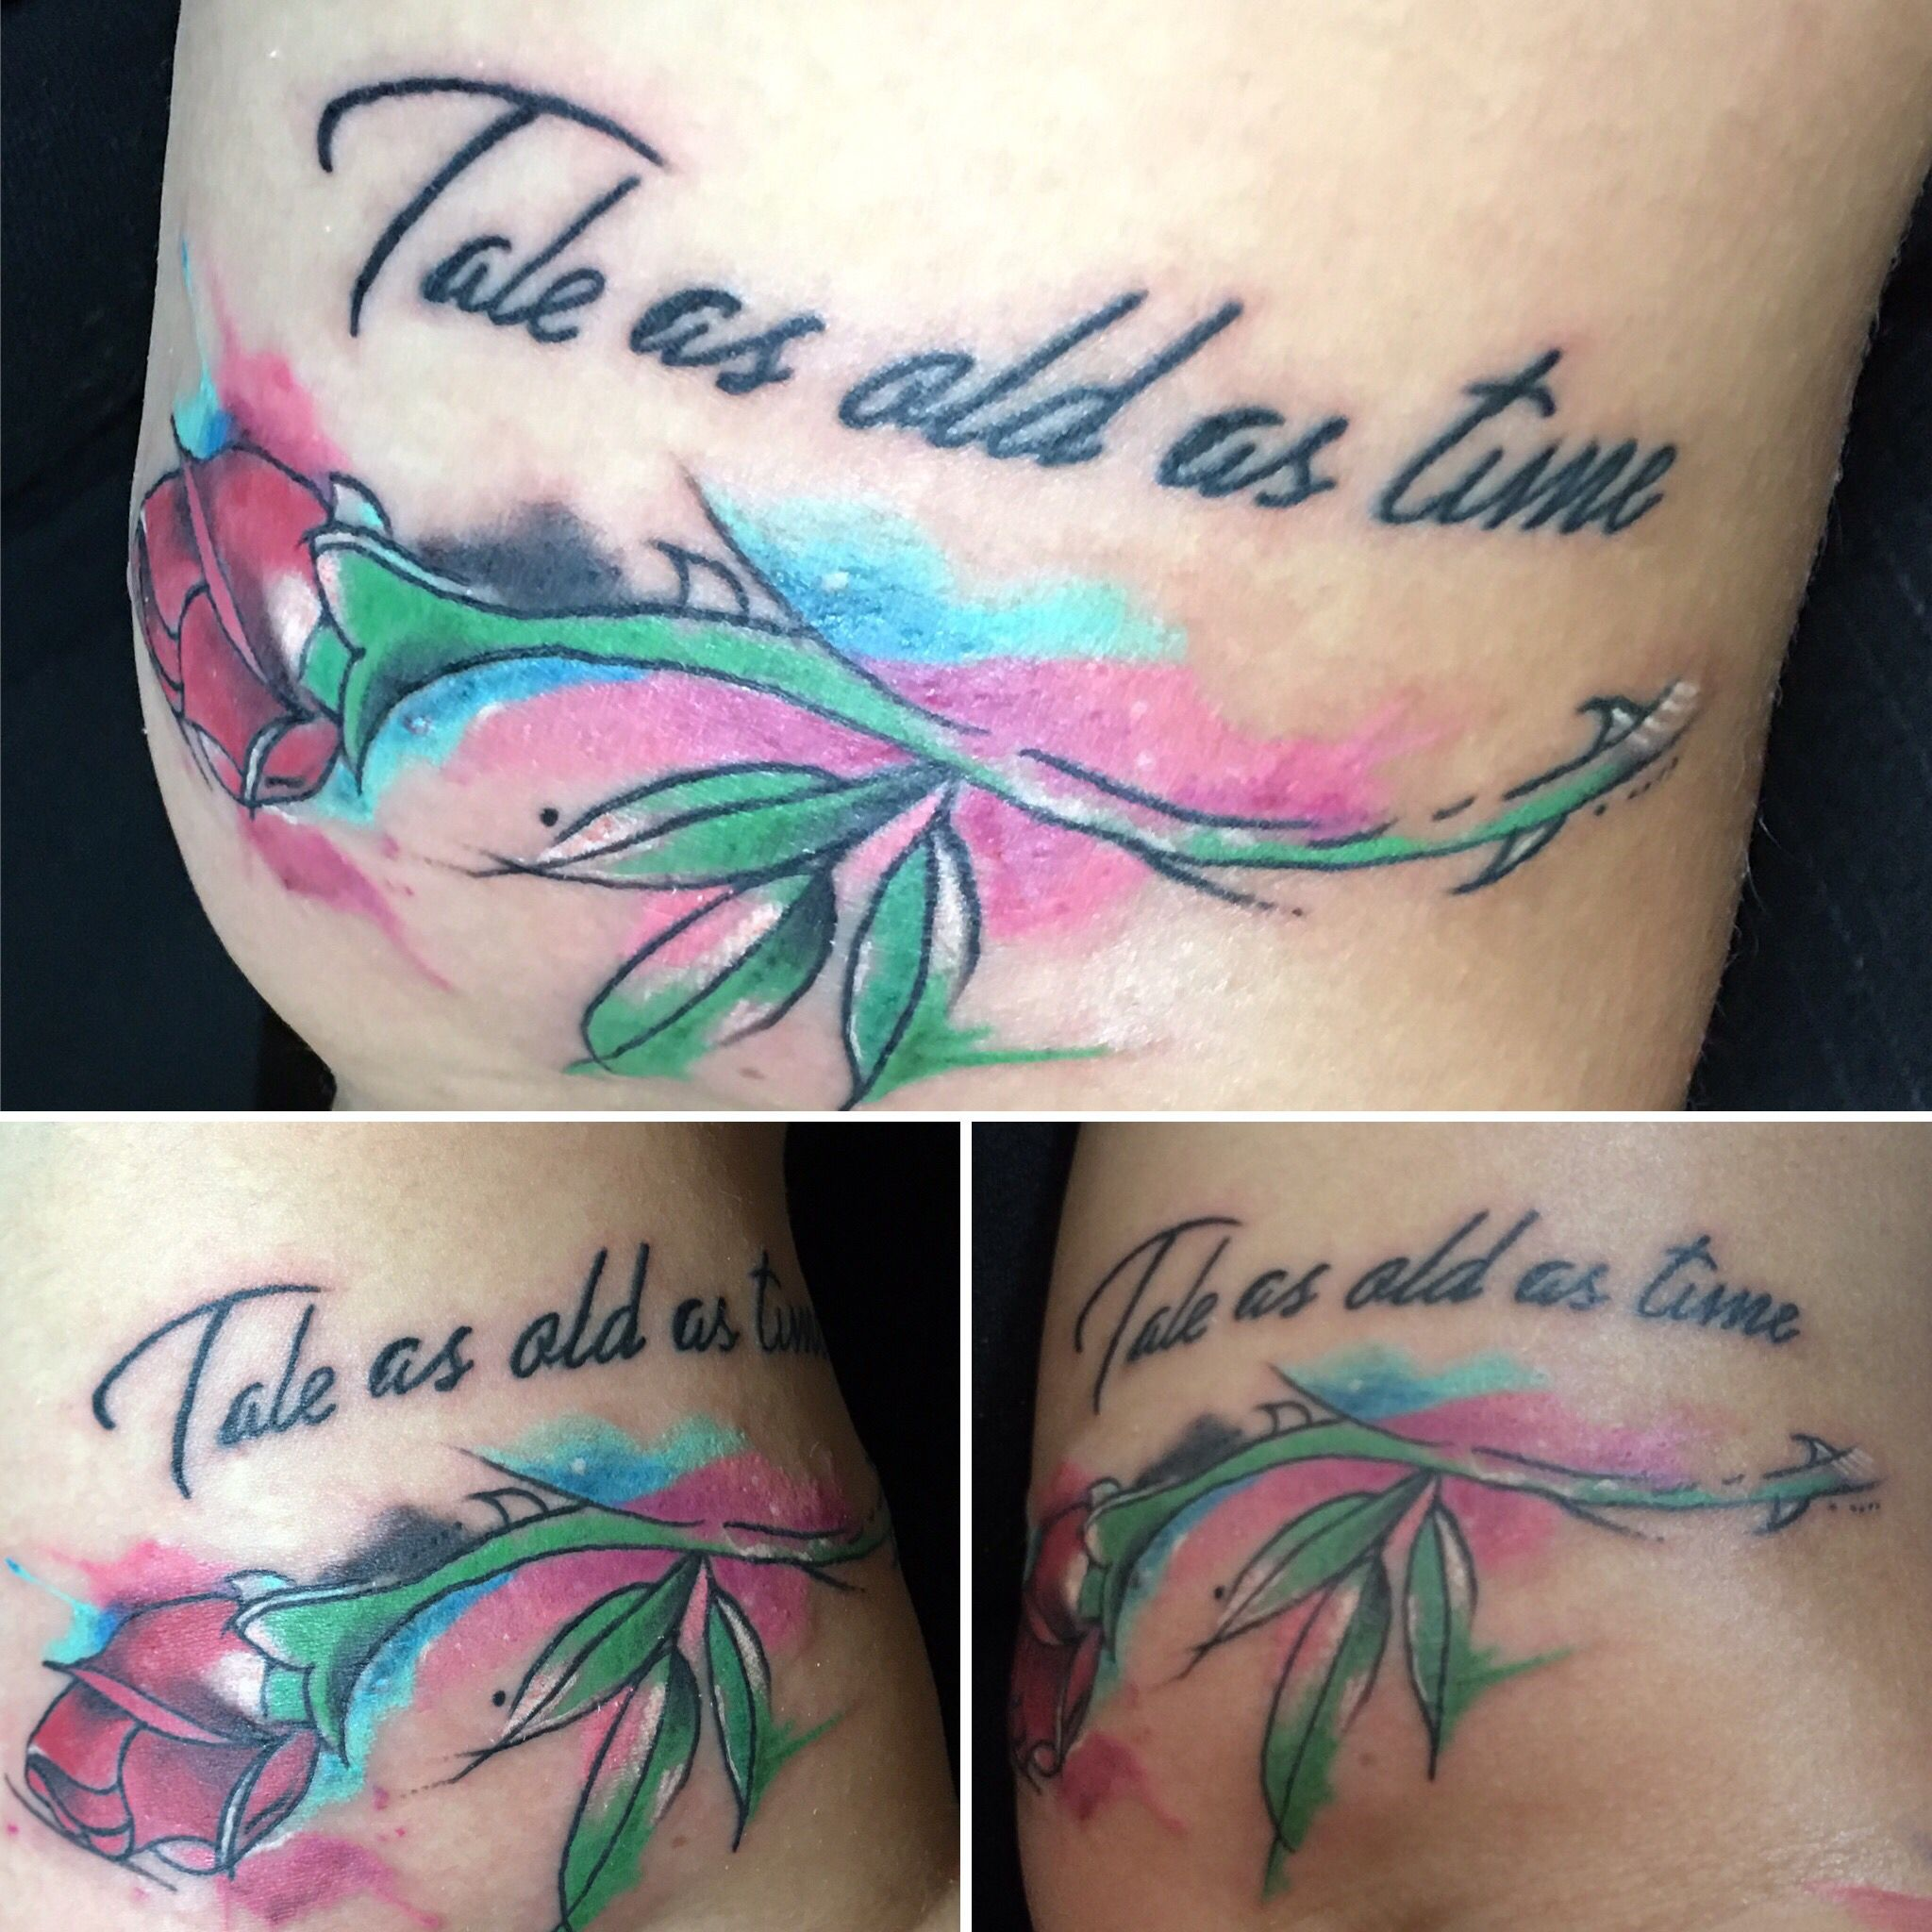 Red Rose Watercolor Tattoo And Tale As Old As Time Love The